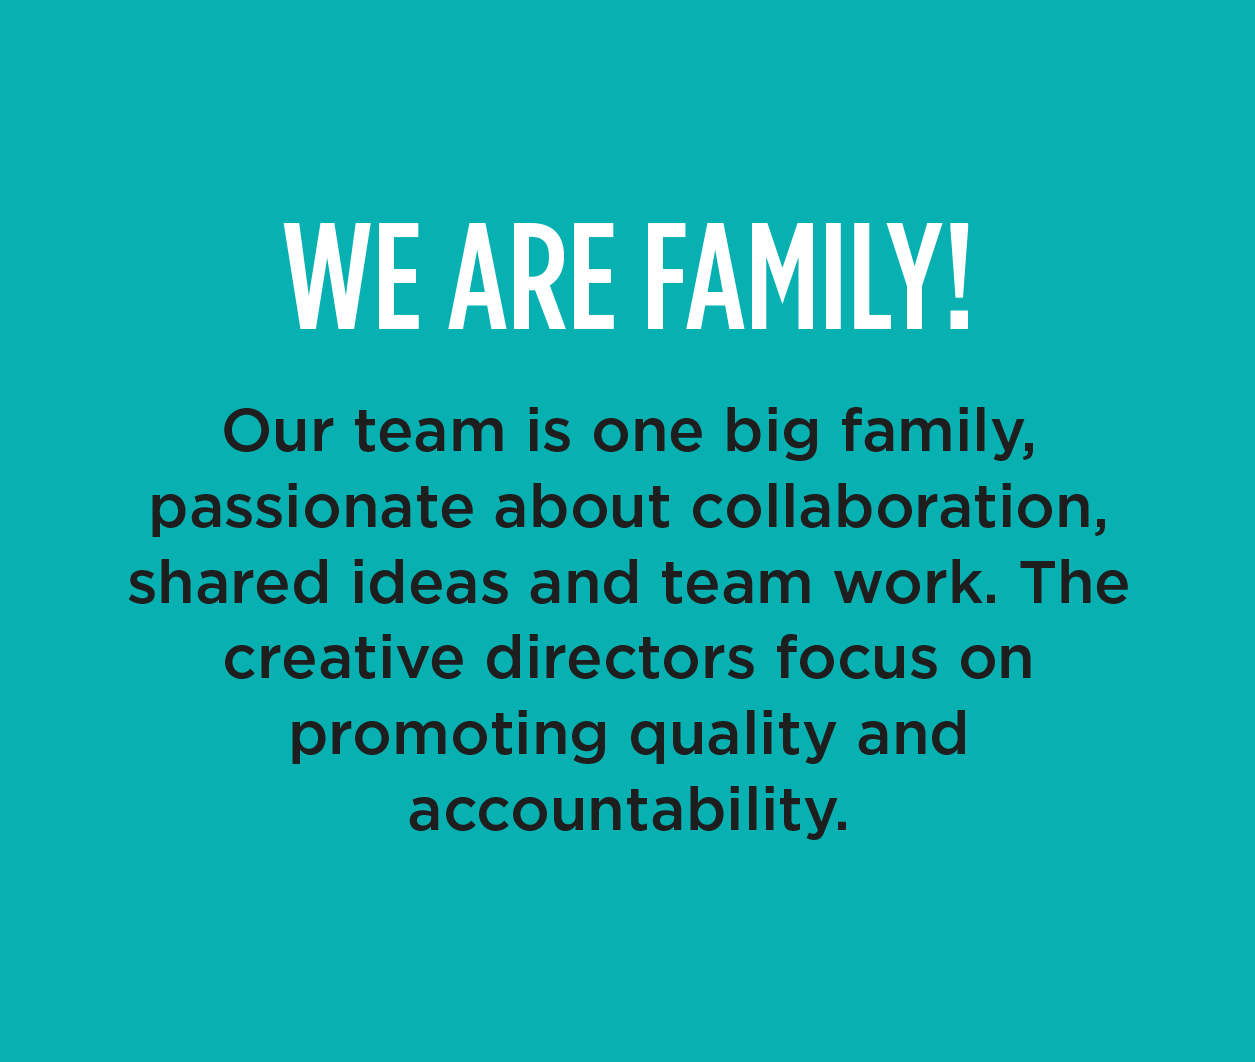 WE ARE FAMILY! - Our team is one big family, passionate about collaboration, shared ideas and team work. The creative directors focus on promoting quality and accountability.